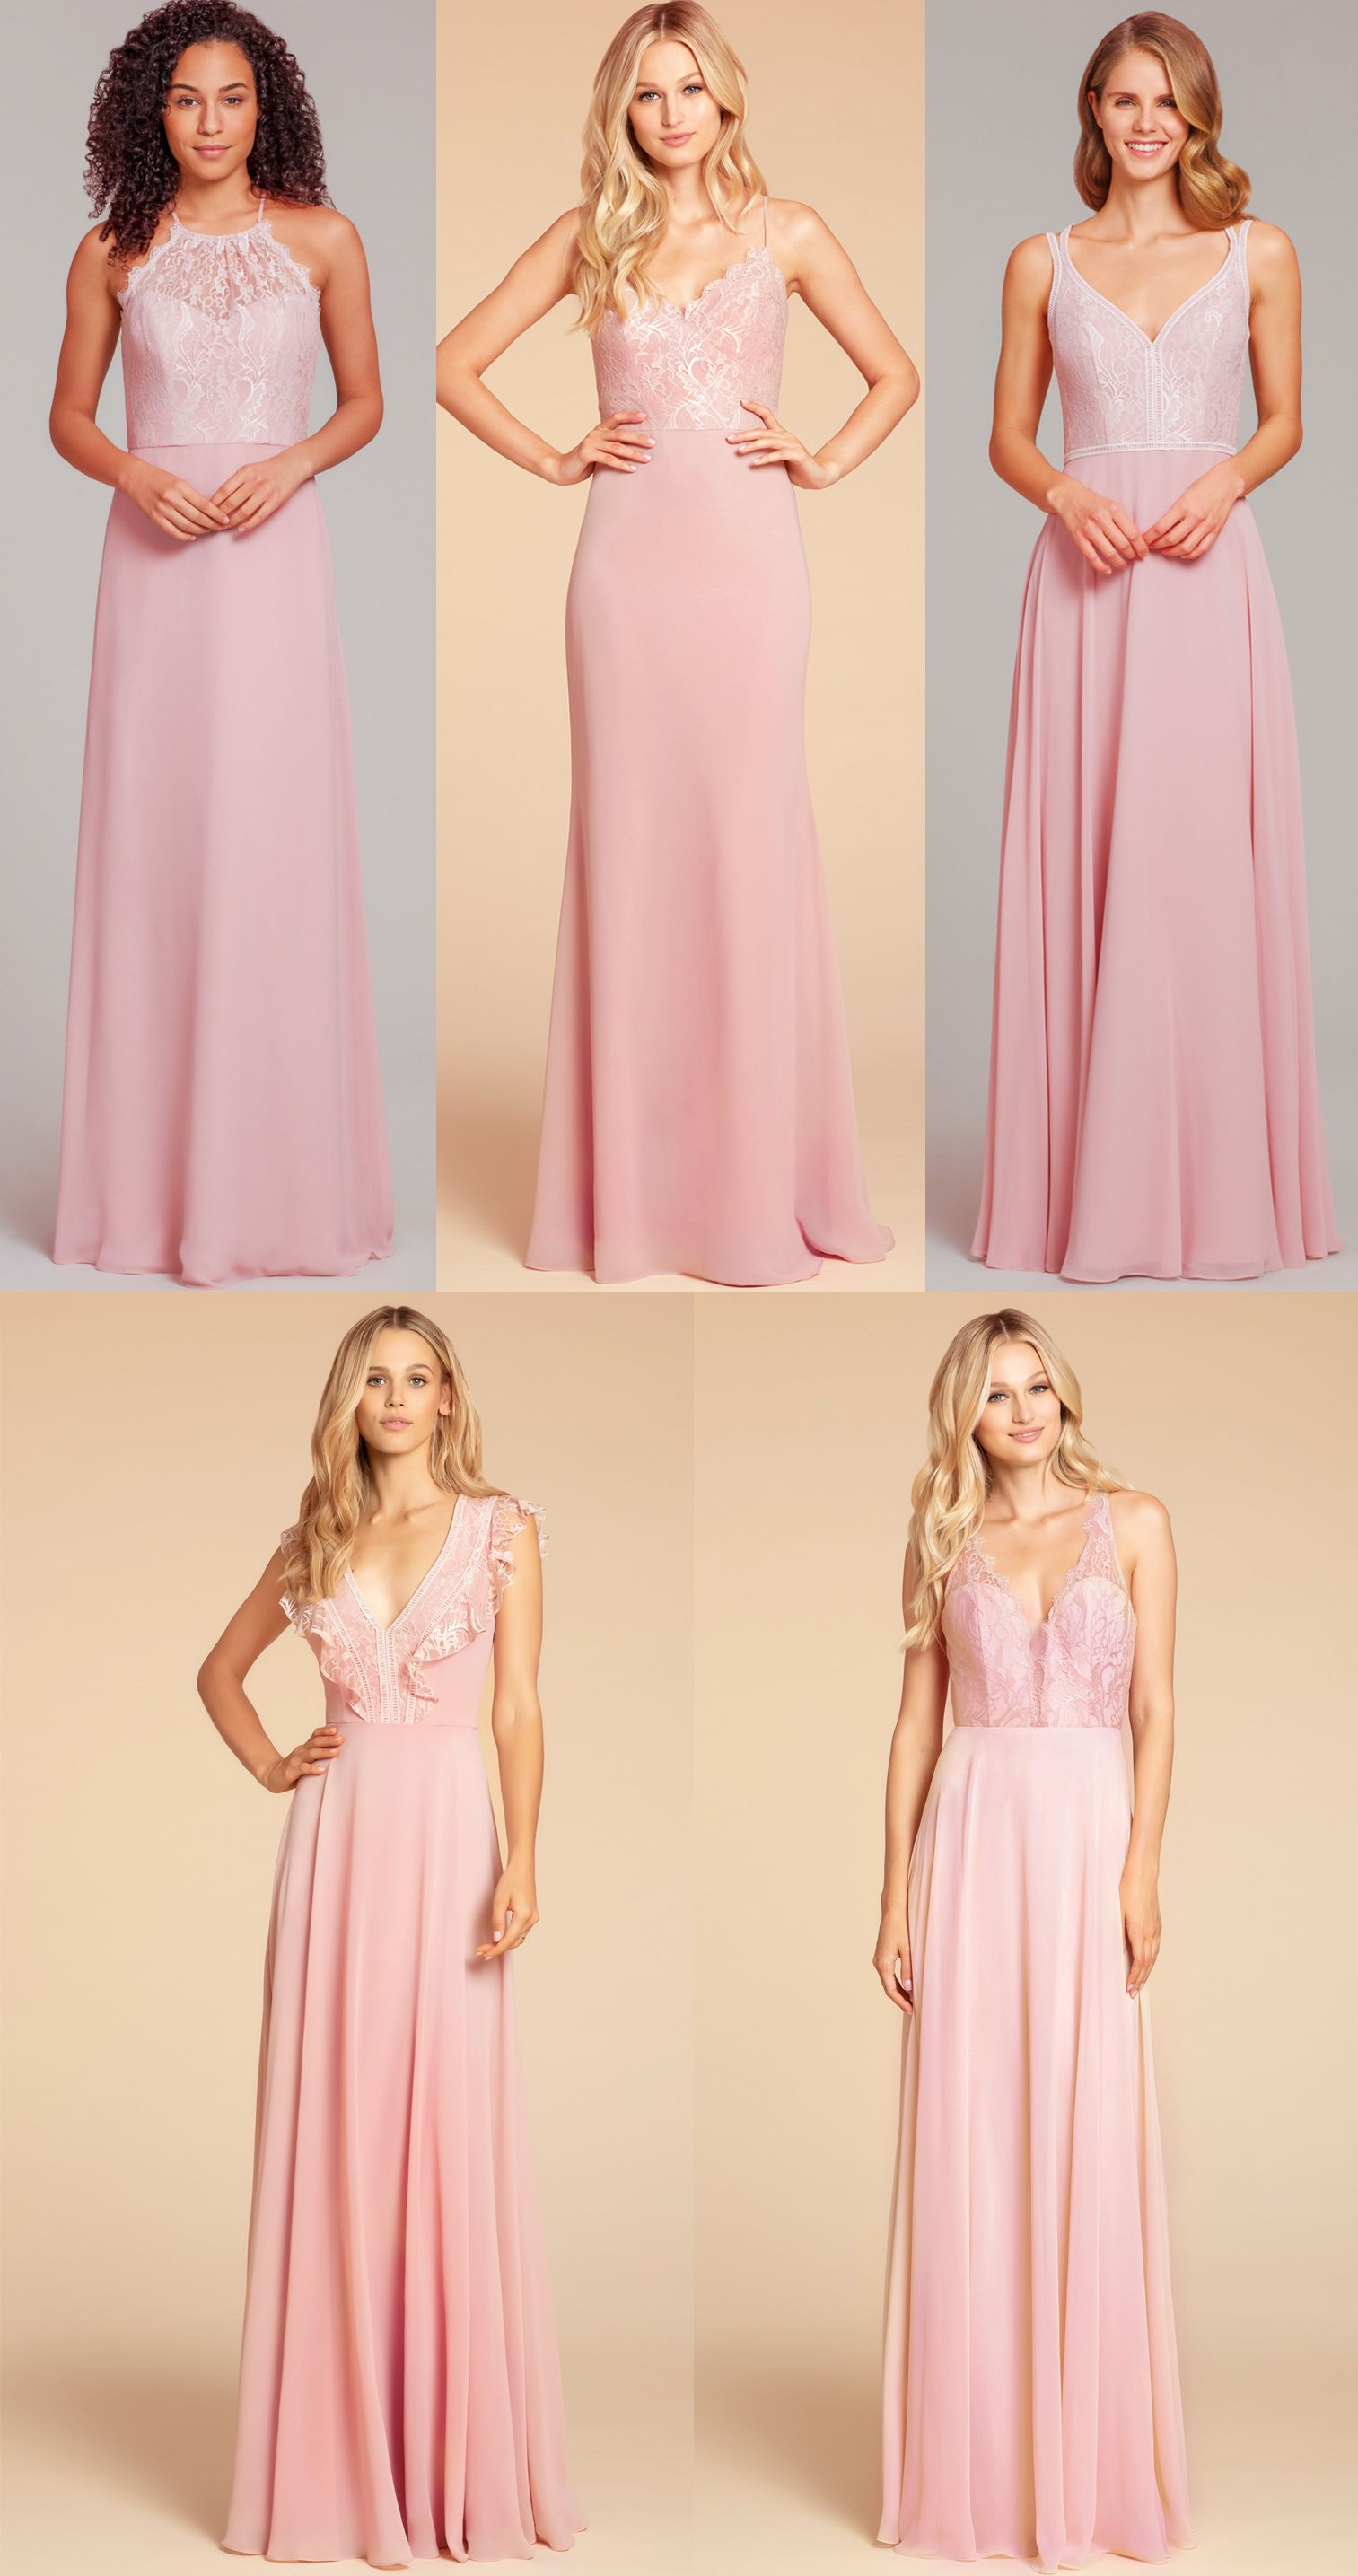 ce5fbcb8ad2d Hayley Paige Occasions bridesmaids gown blush dusty rose lace detail bridesmaid  dresses - Style 5861, 5905, 5864, 5912, and 5919